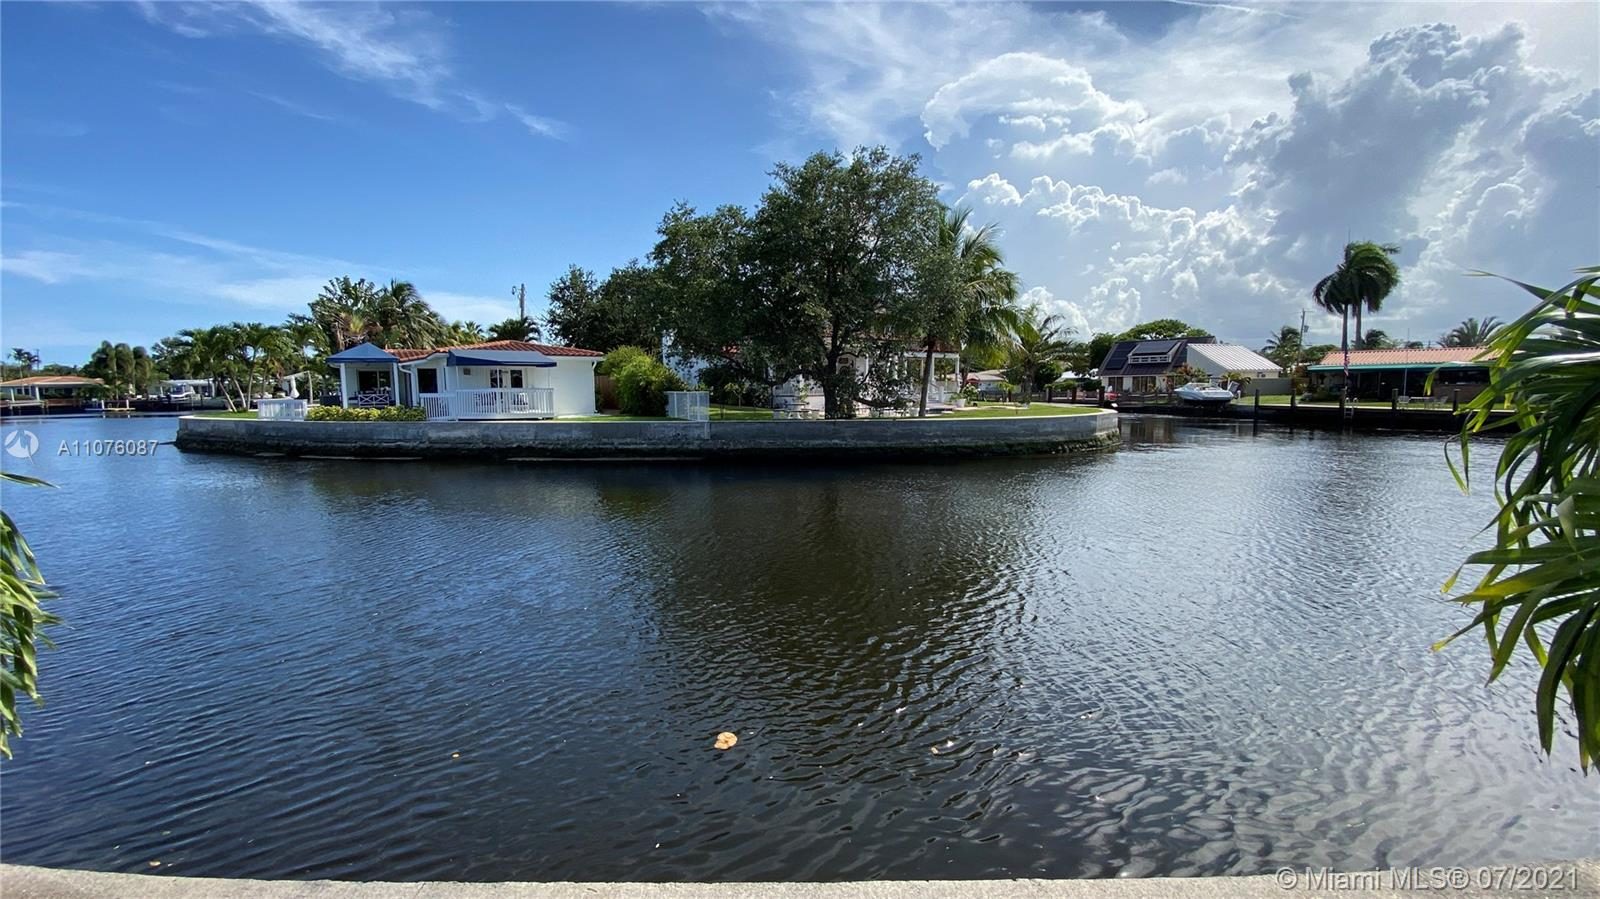 Property for sale at 2133 NE 20th Ave, Wilton Manors,  Florida 33305